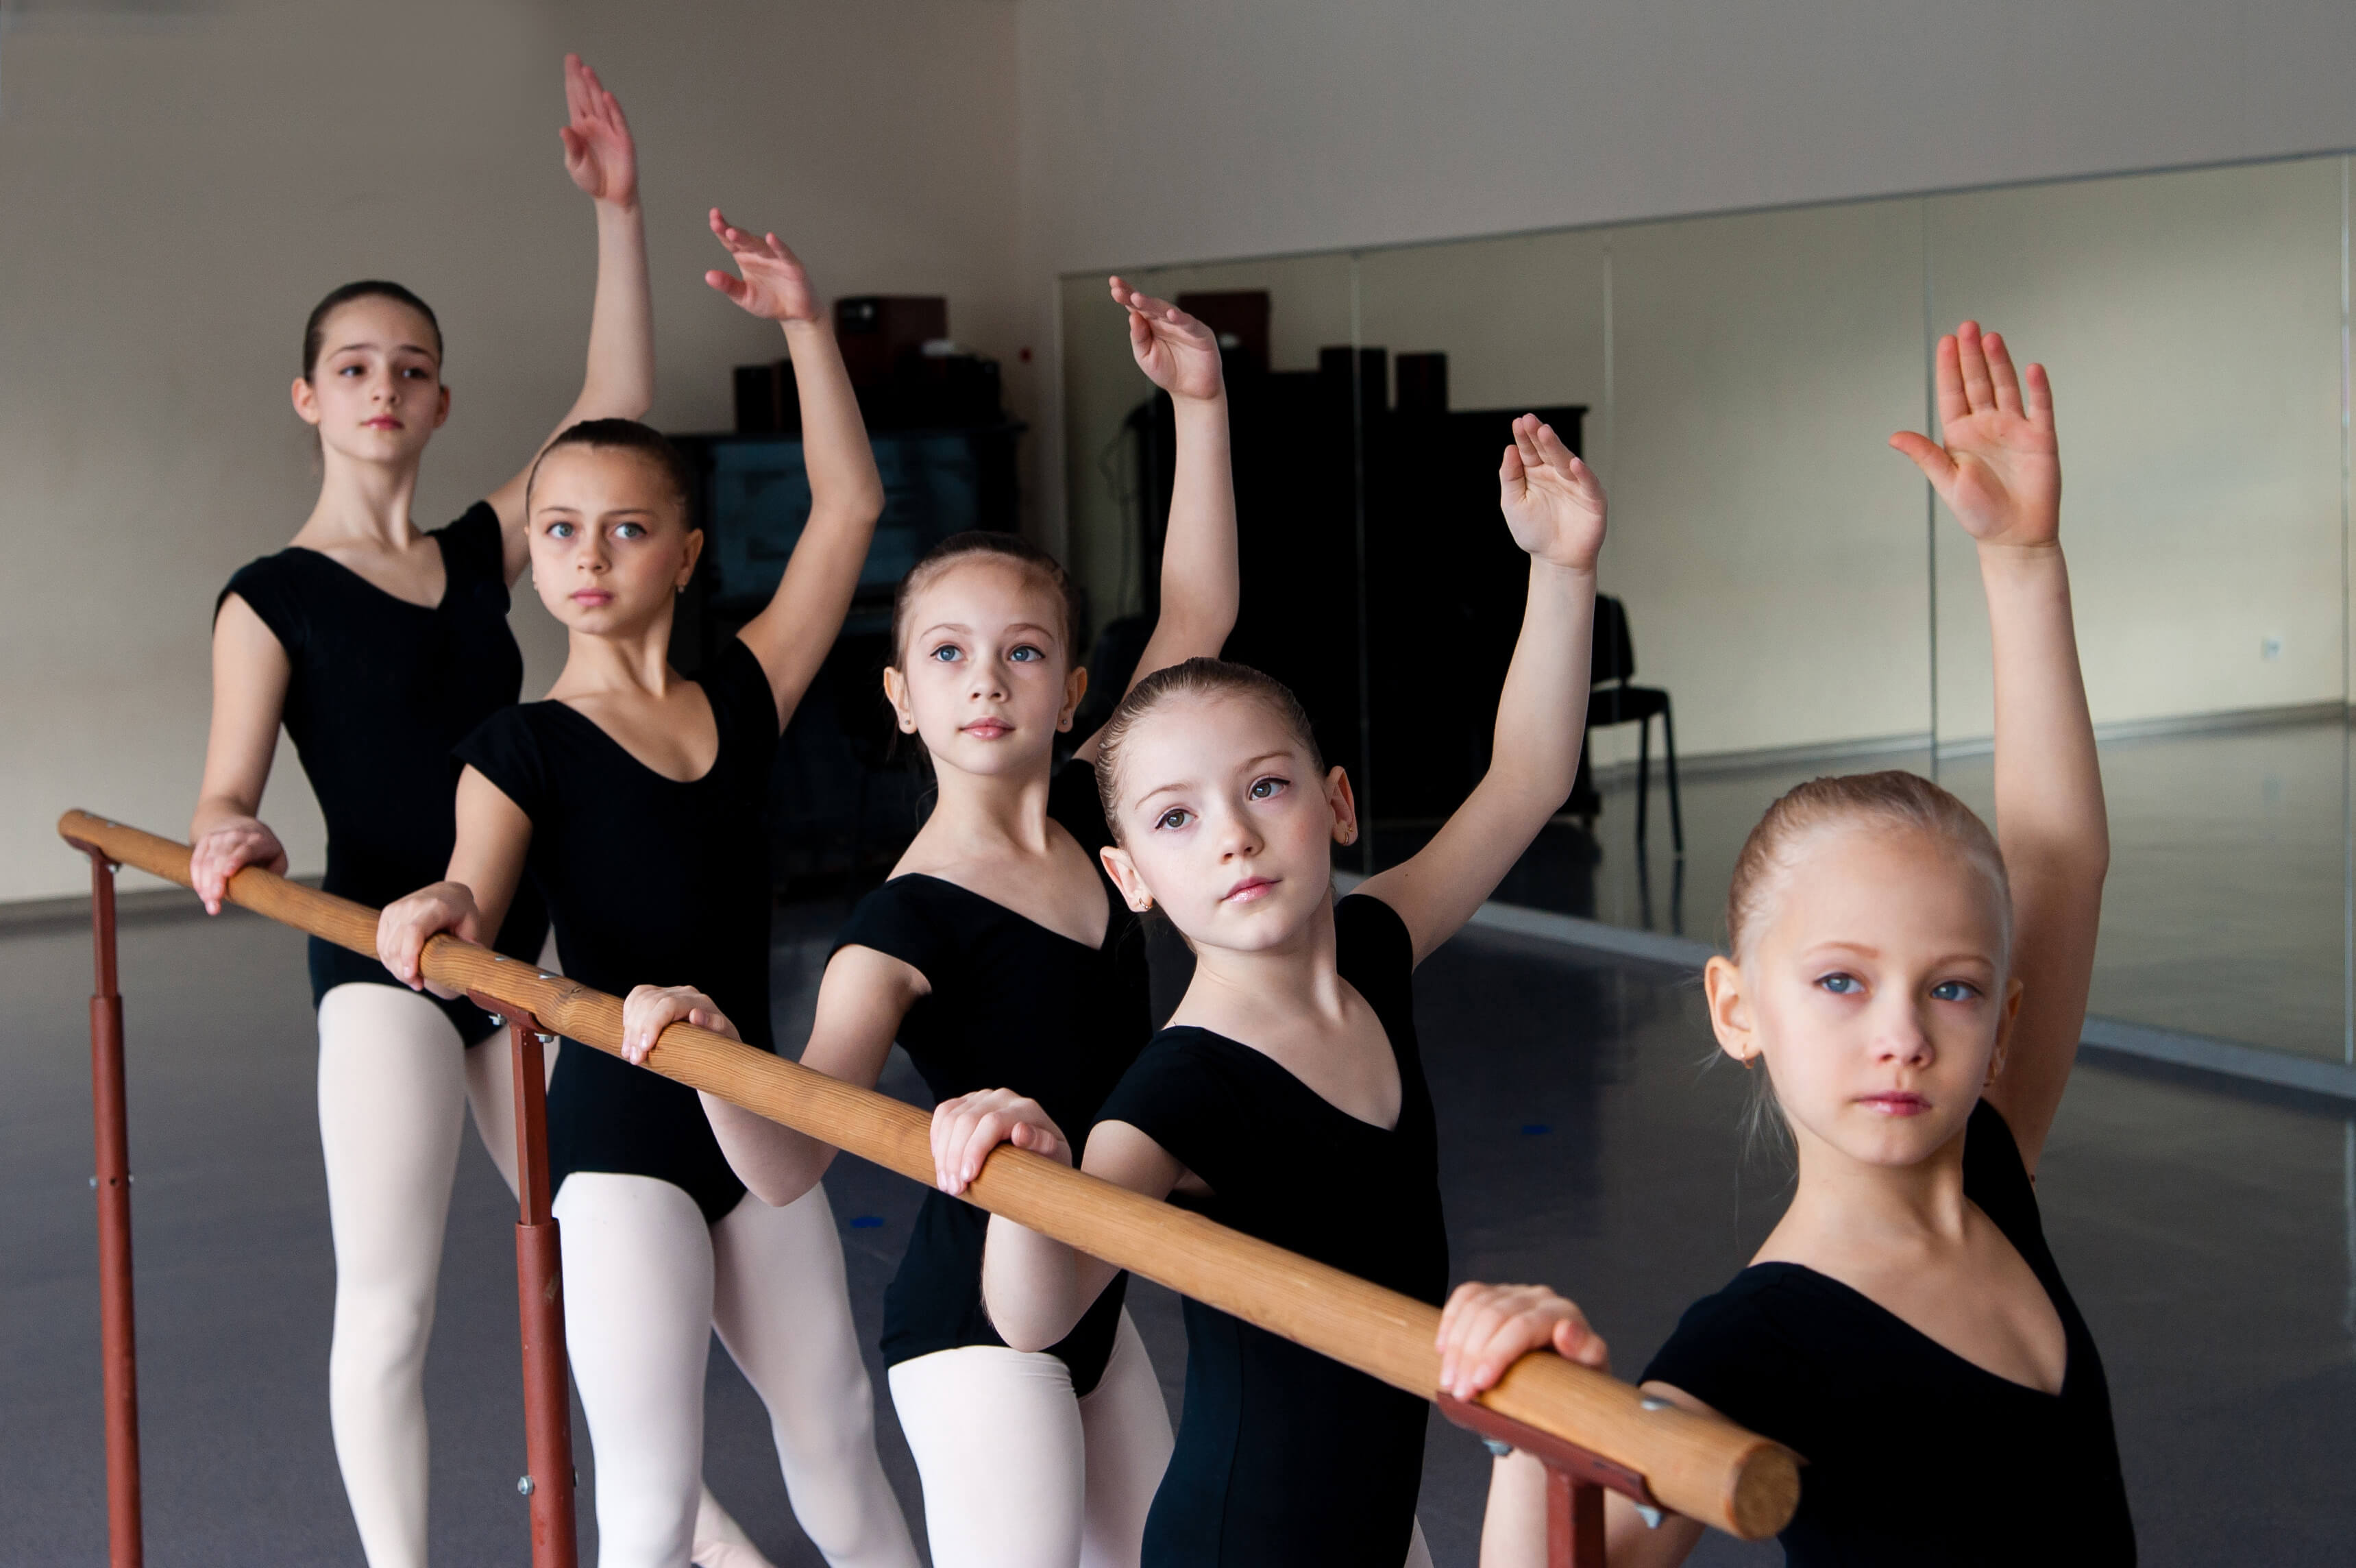 Children In Ballet Dance Class.